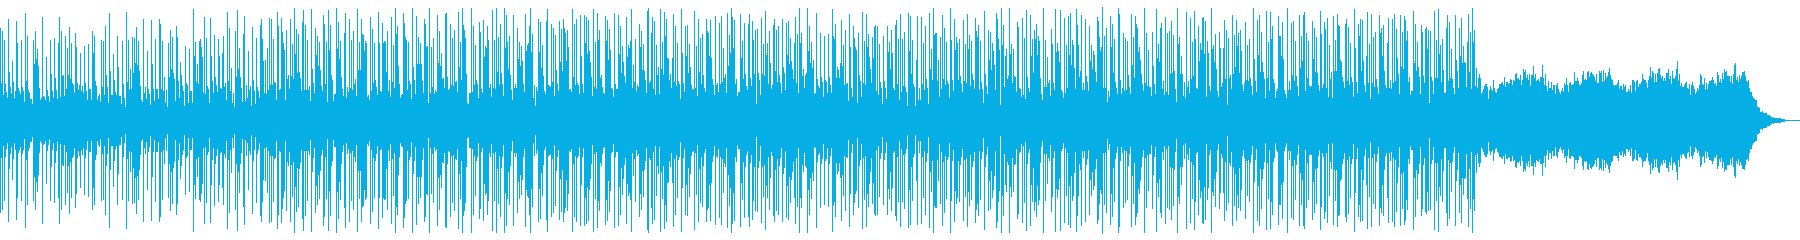 Baseless version's reproduced waveform